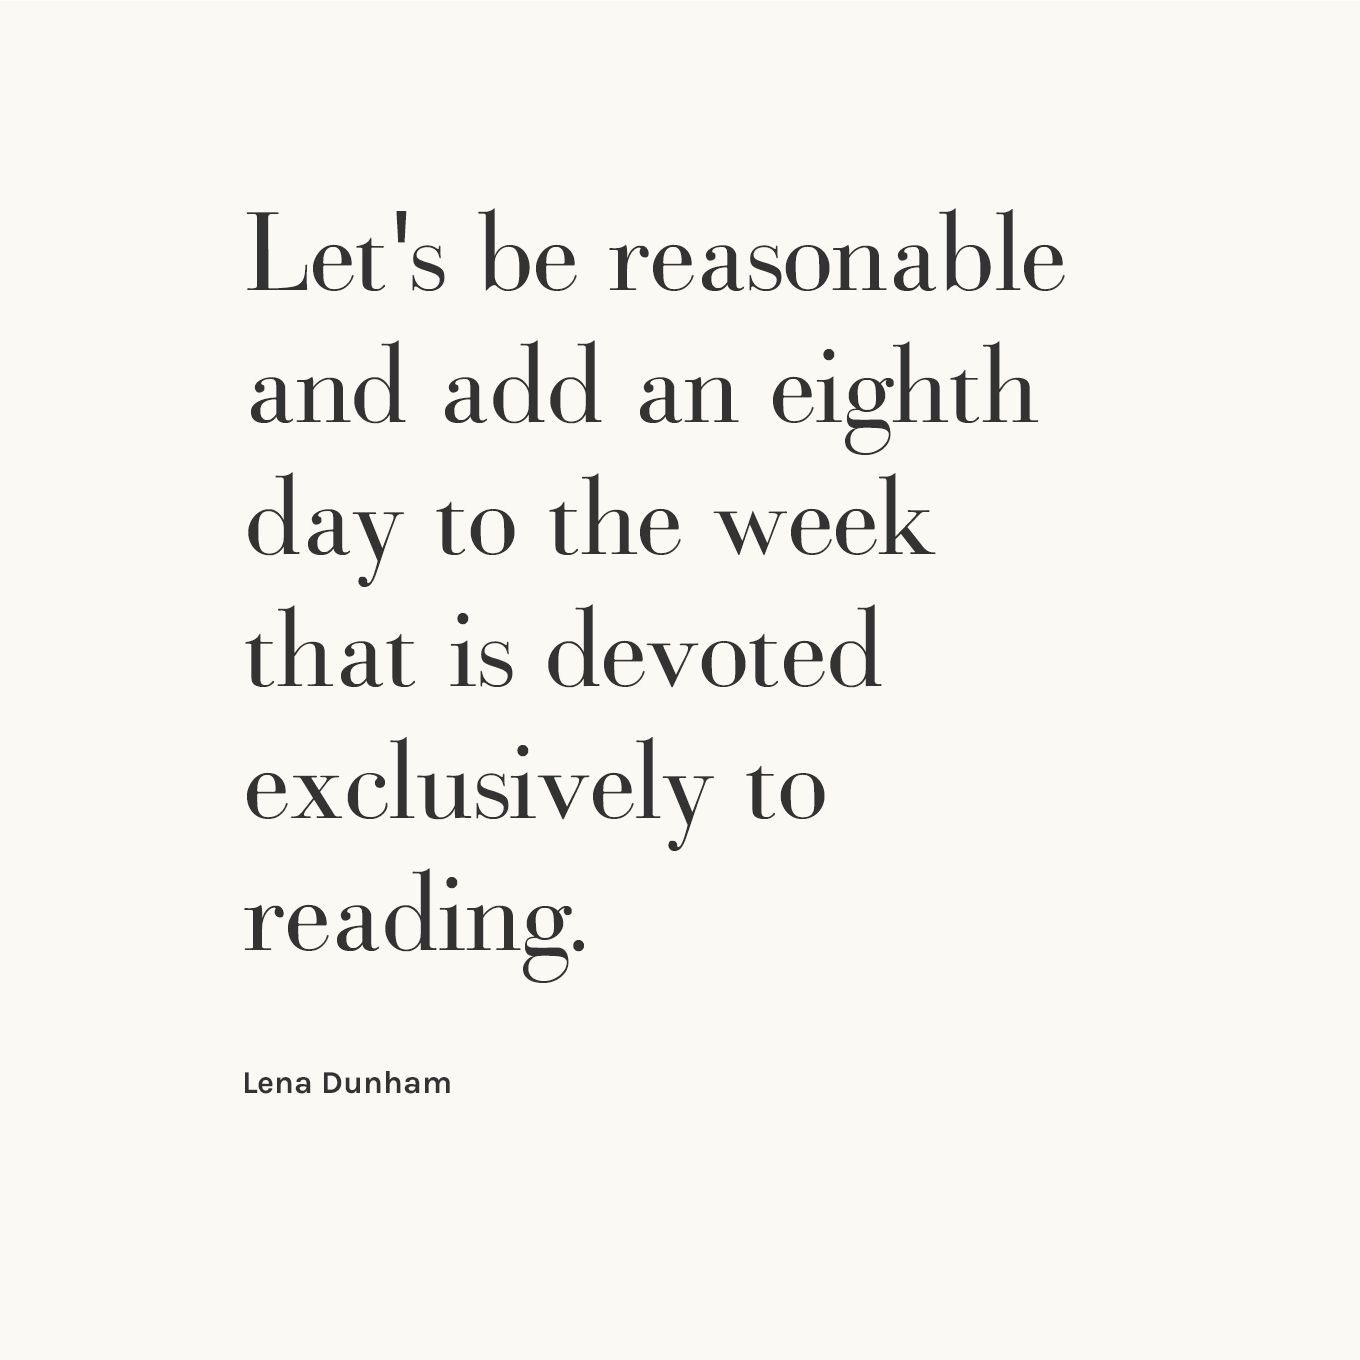 """Let's be reasonable and add an eight day to the week that is devoted exclusively to reading."" - Lena Dunham"